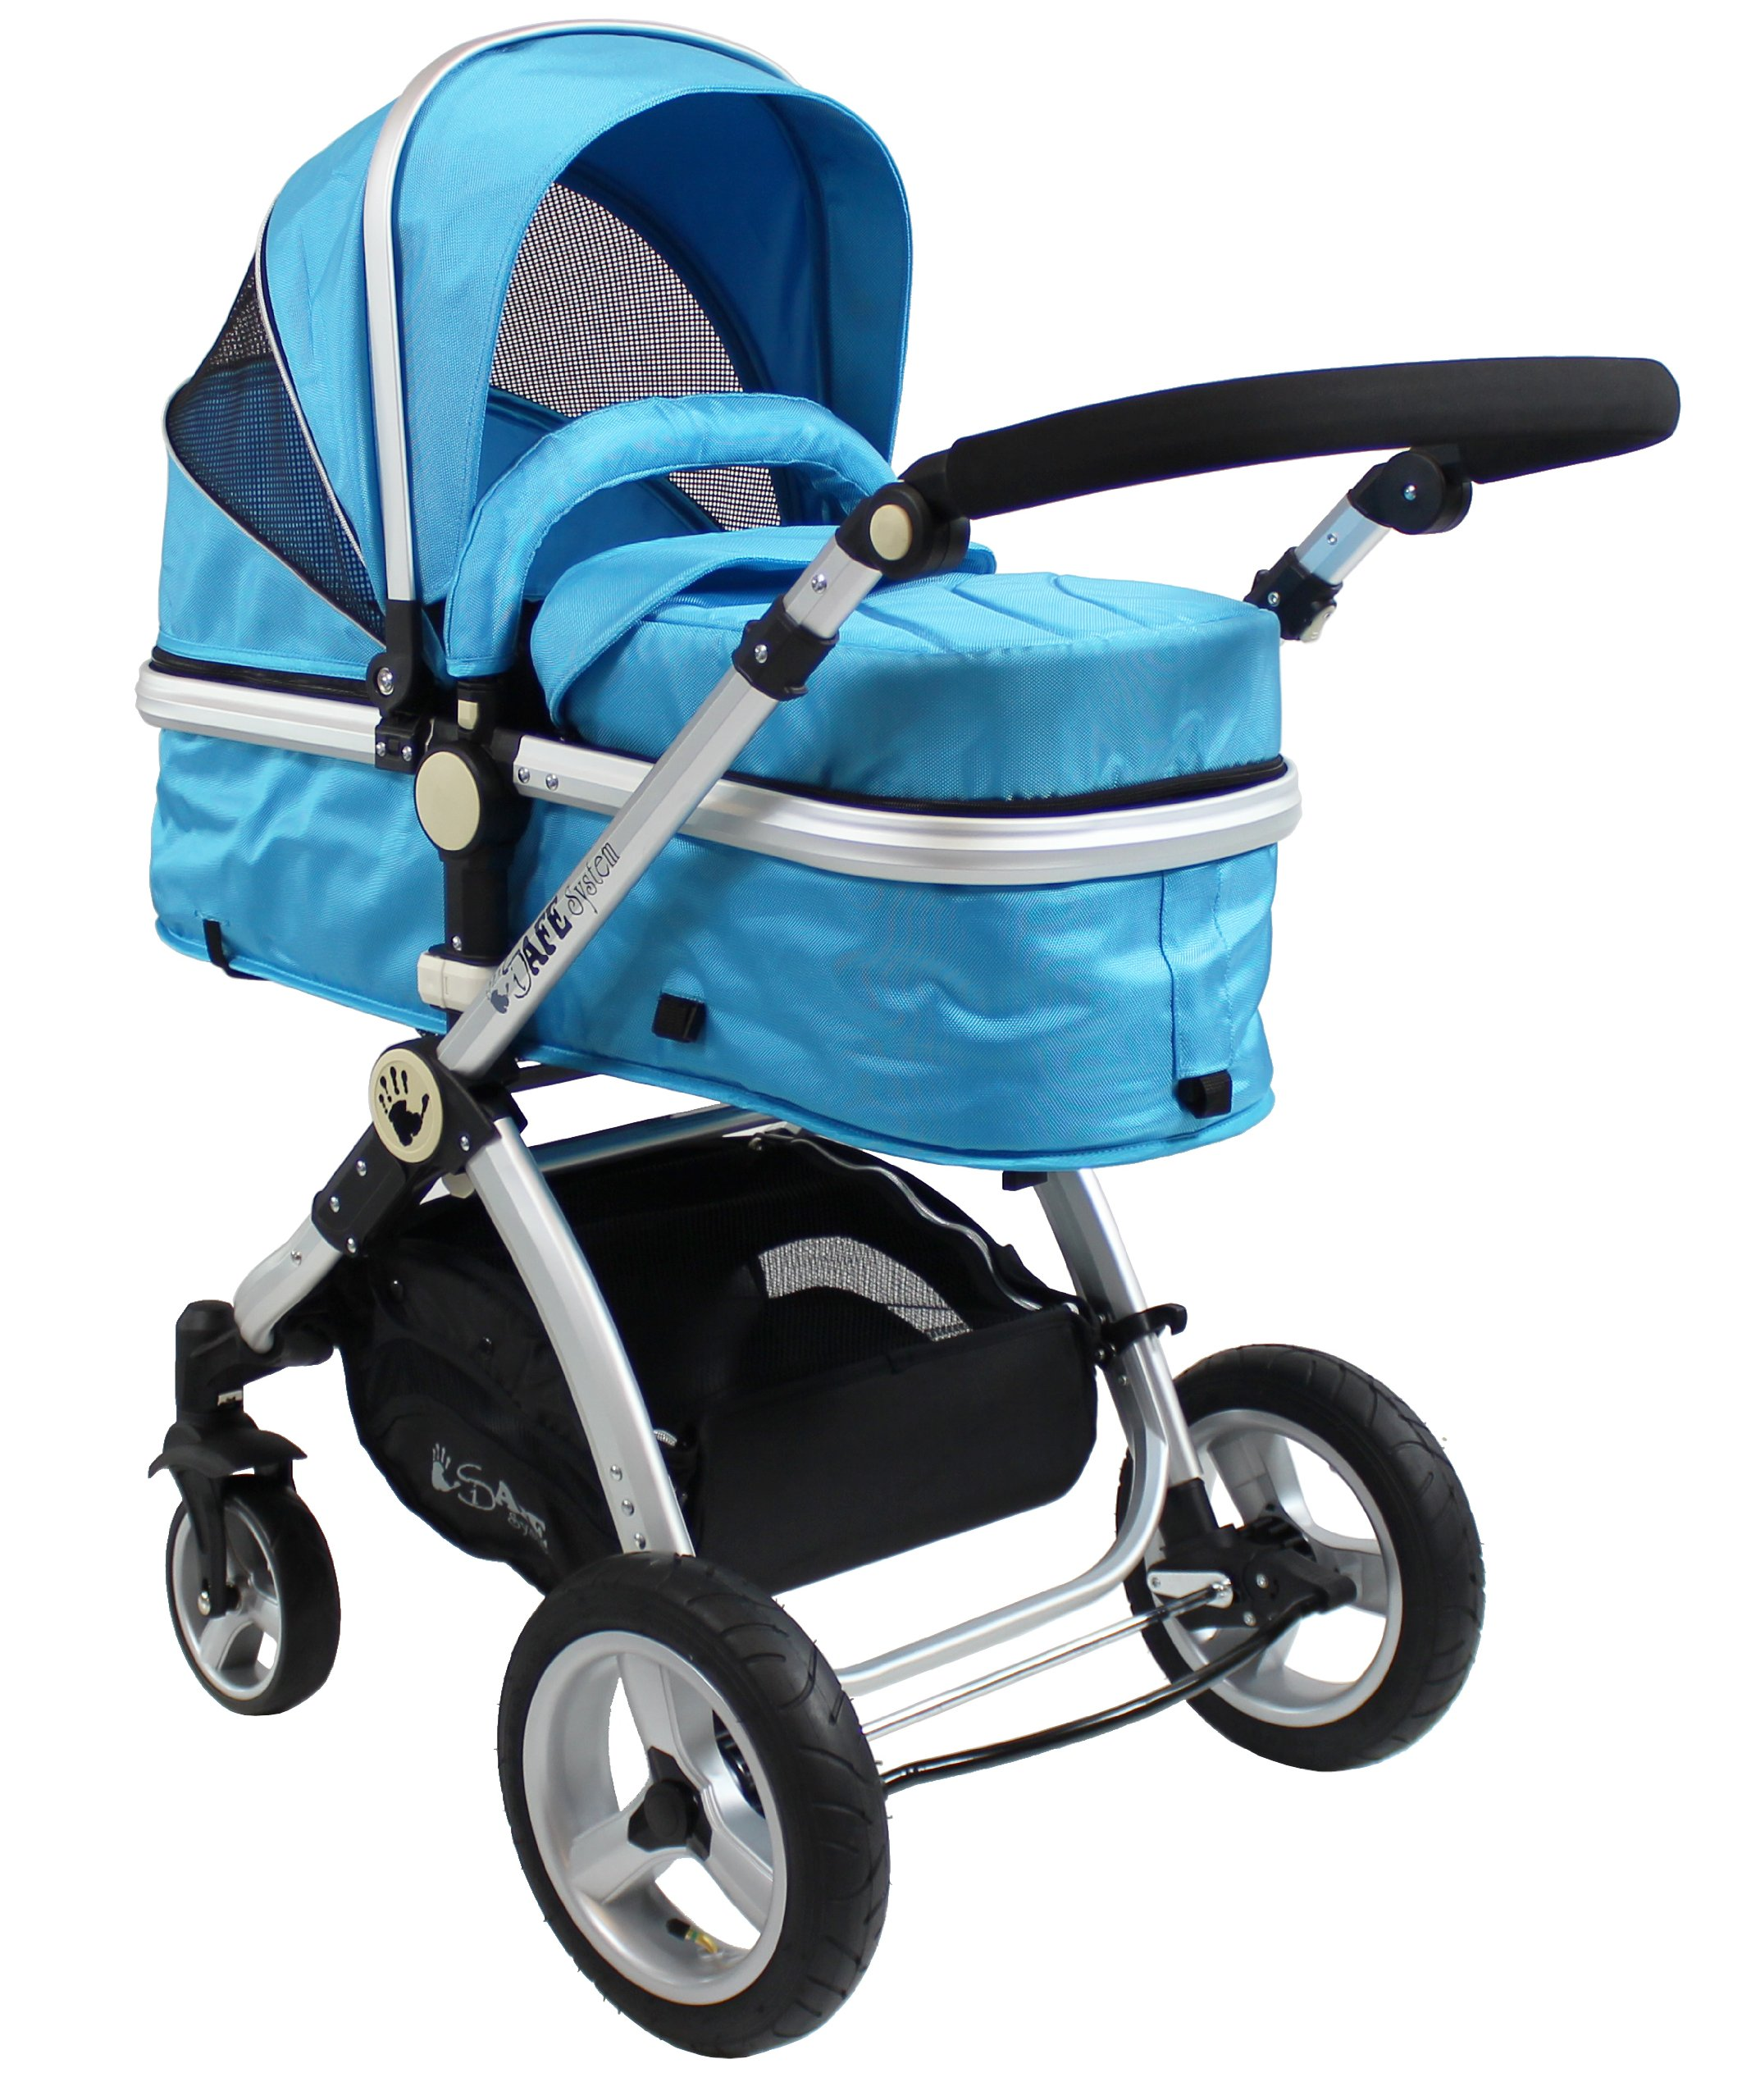 iSafe 2 in 1 Baby Pram System Complete (Ocean) iSafe We Are Proud To Present One Of The Finest 2in1 Stroller/Pram/Pramette/Travel System in the UK & Europe! 2 in 1 Stroller / Pram Extremely Easy Conversion To A Full Size Carrycot For Unrivalled Comfort. Complete With Boot Cover, Luxury Liner, 5 Point Harness, Raincover, Shopping Basket With Closed Ziped Top High Quality Rubber Inflatable Wheels With The Full All around Soft Suspension For That Perfect Unrivalled Ride 7